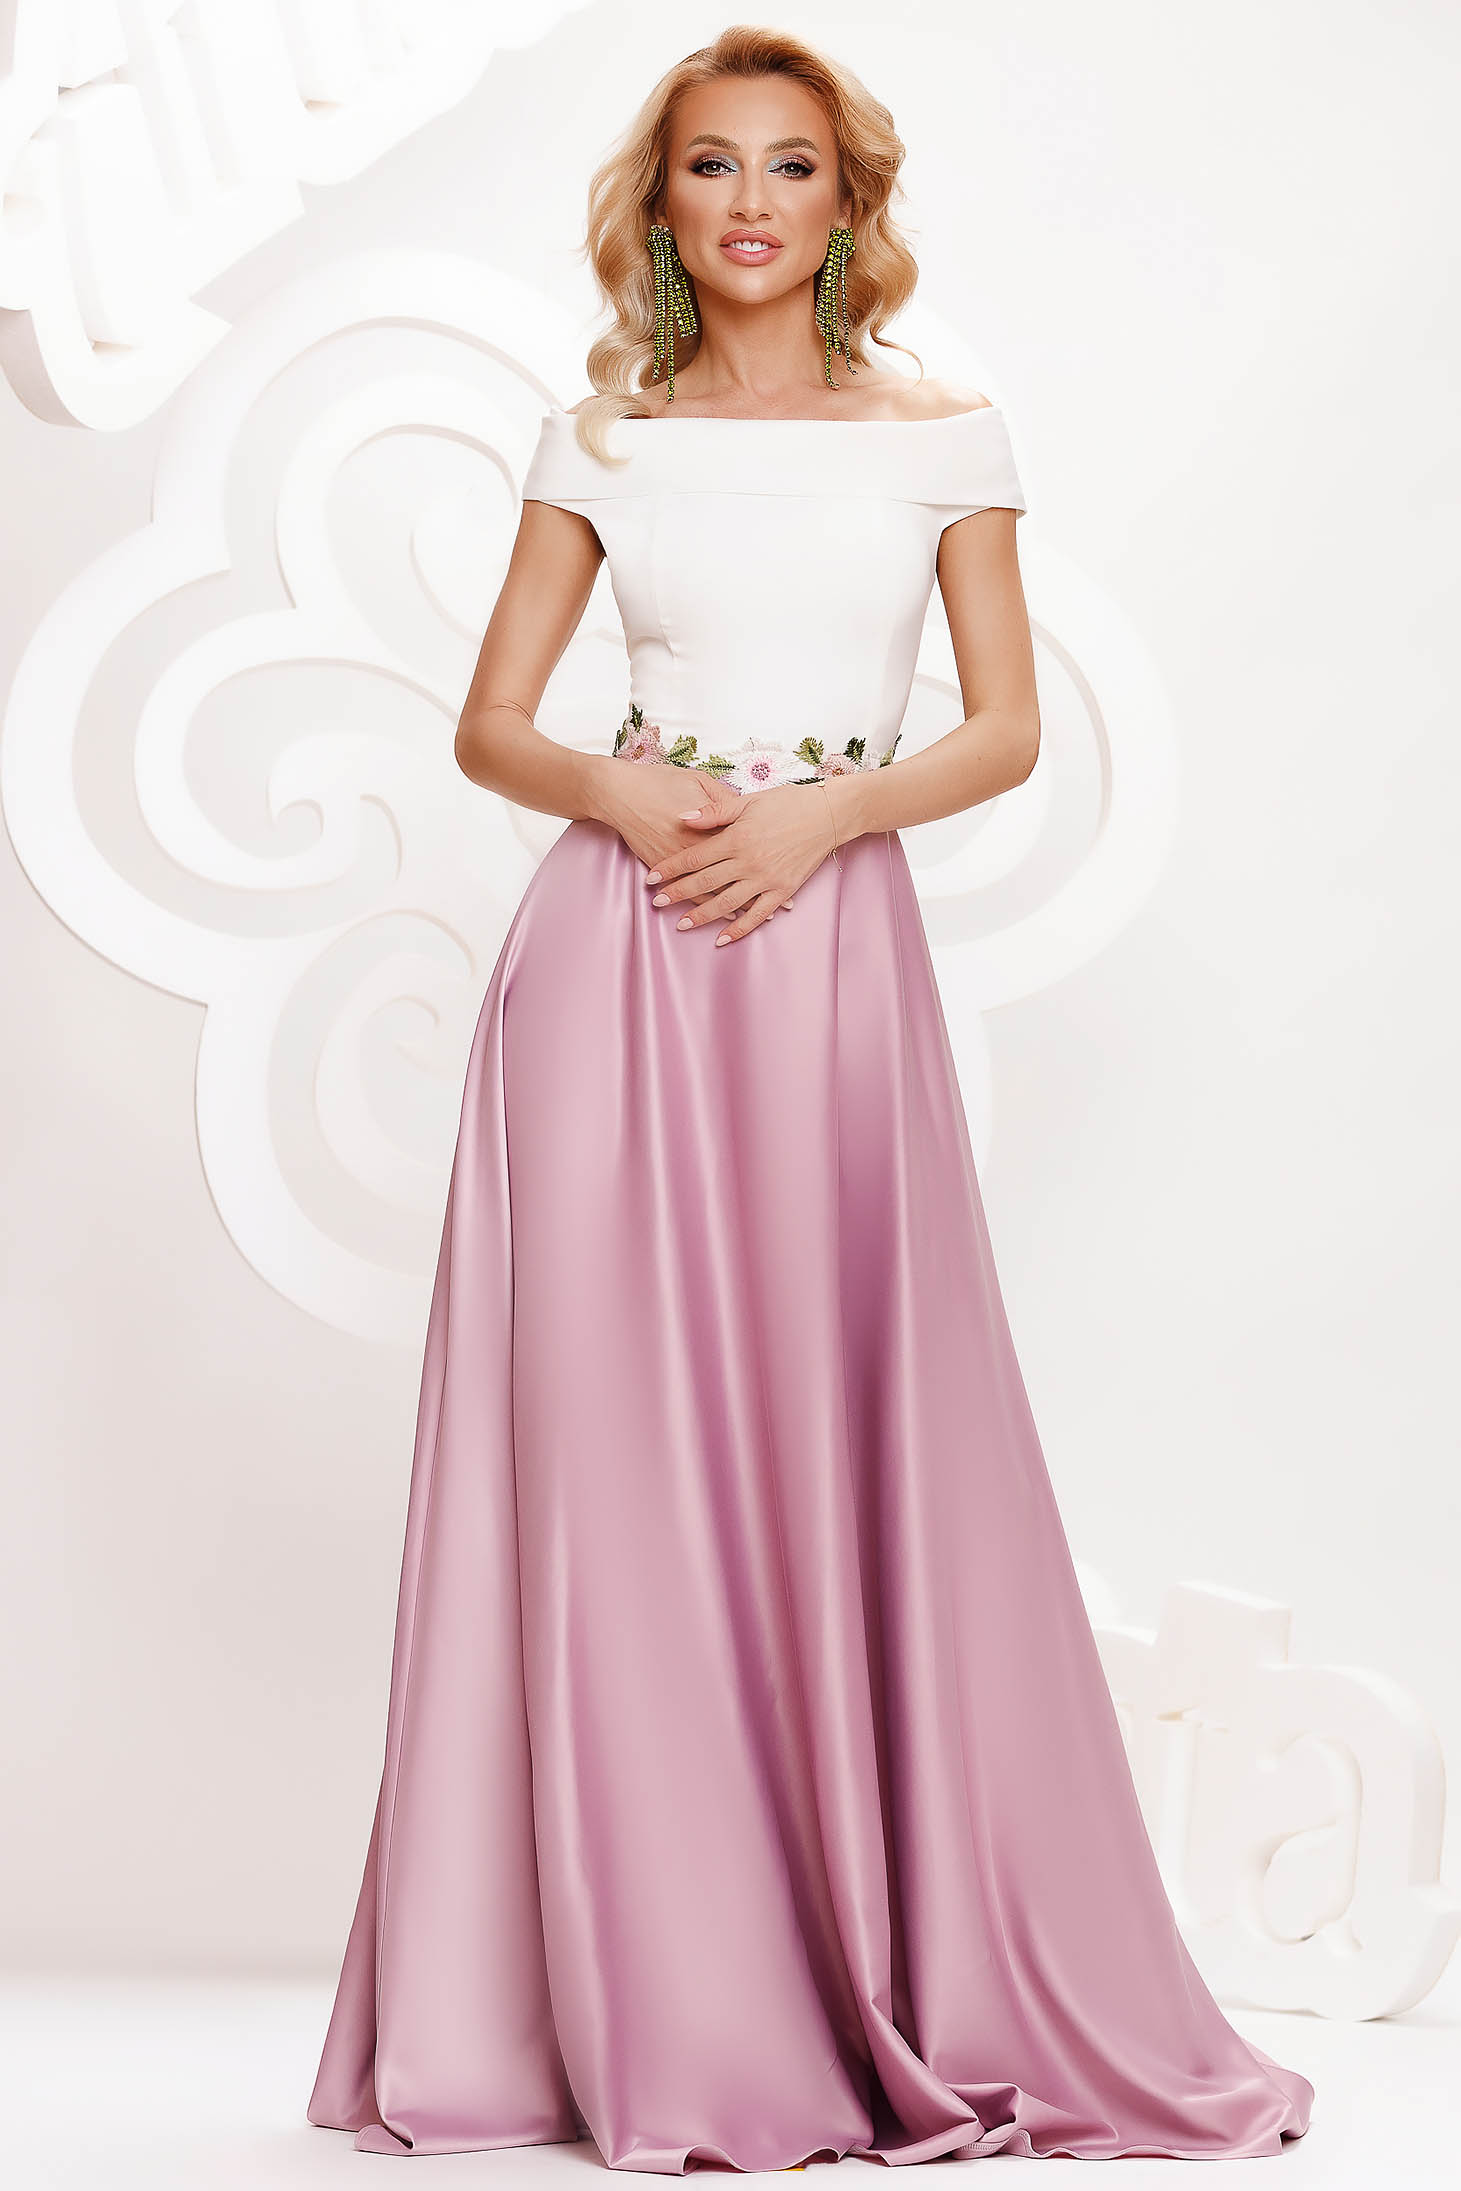 Lightpink dress with embroidery details from satin fabric texture occasional cloche